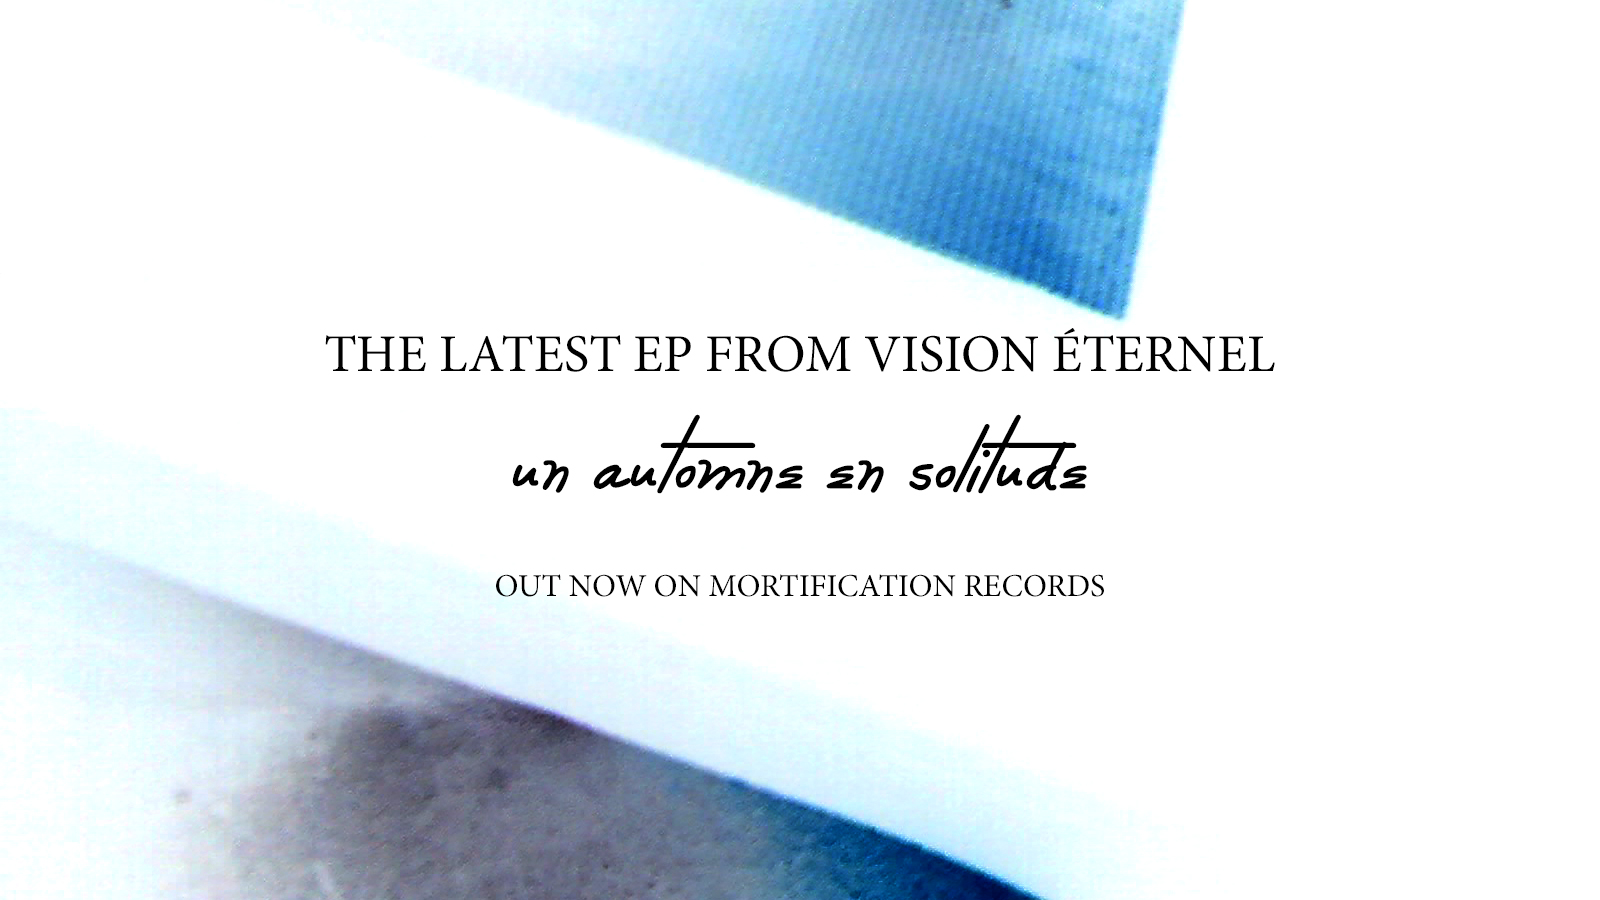 Vision Éternel Un Automne En Solitude EP Is Released